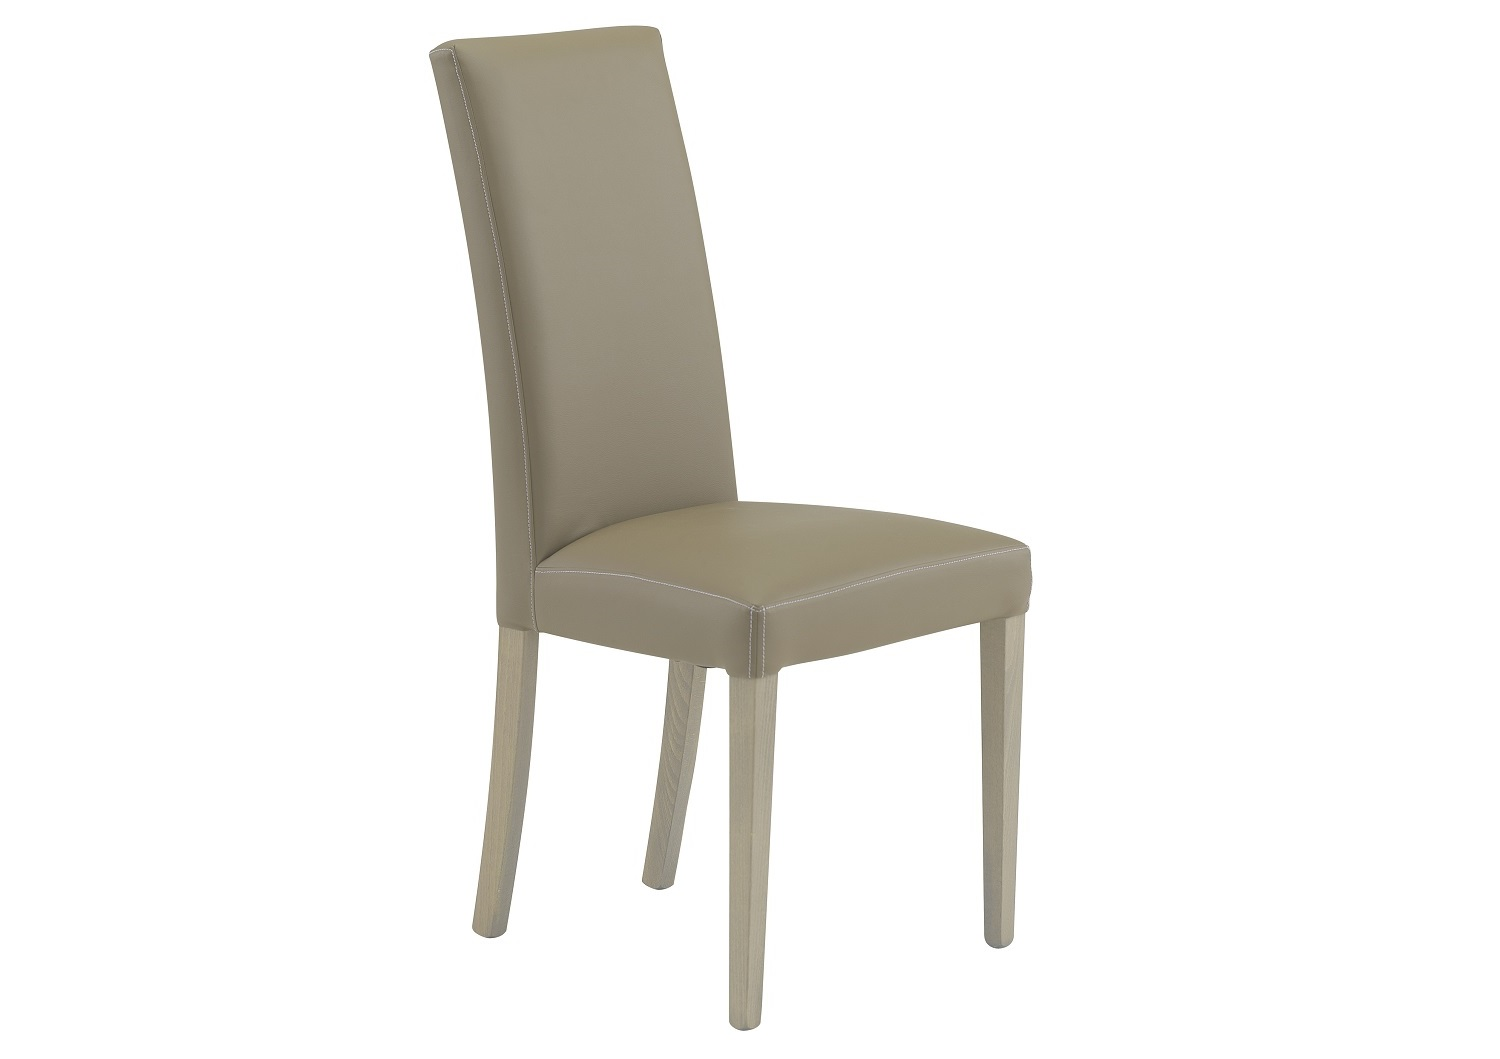 Bilrich Dining Furniture - AVA Dining Chair Taupe